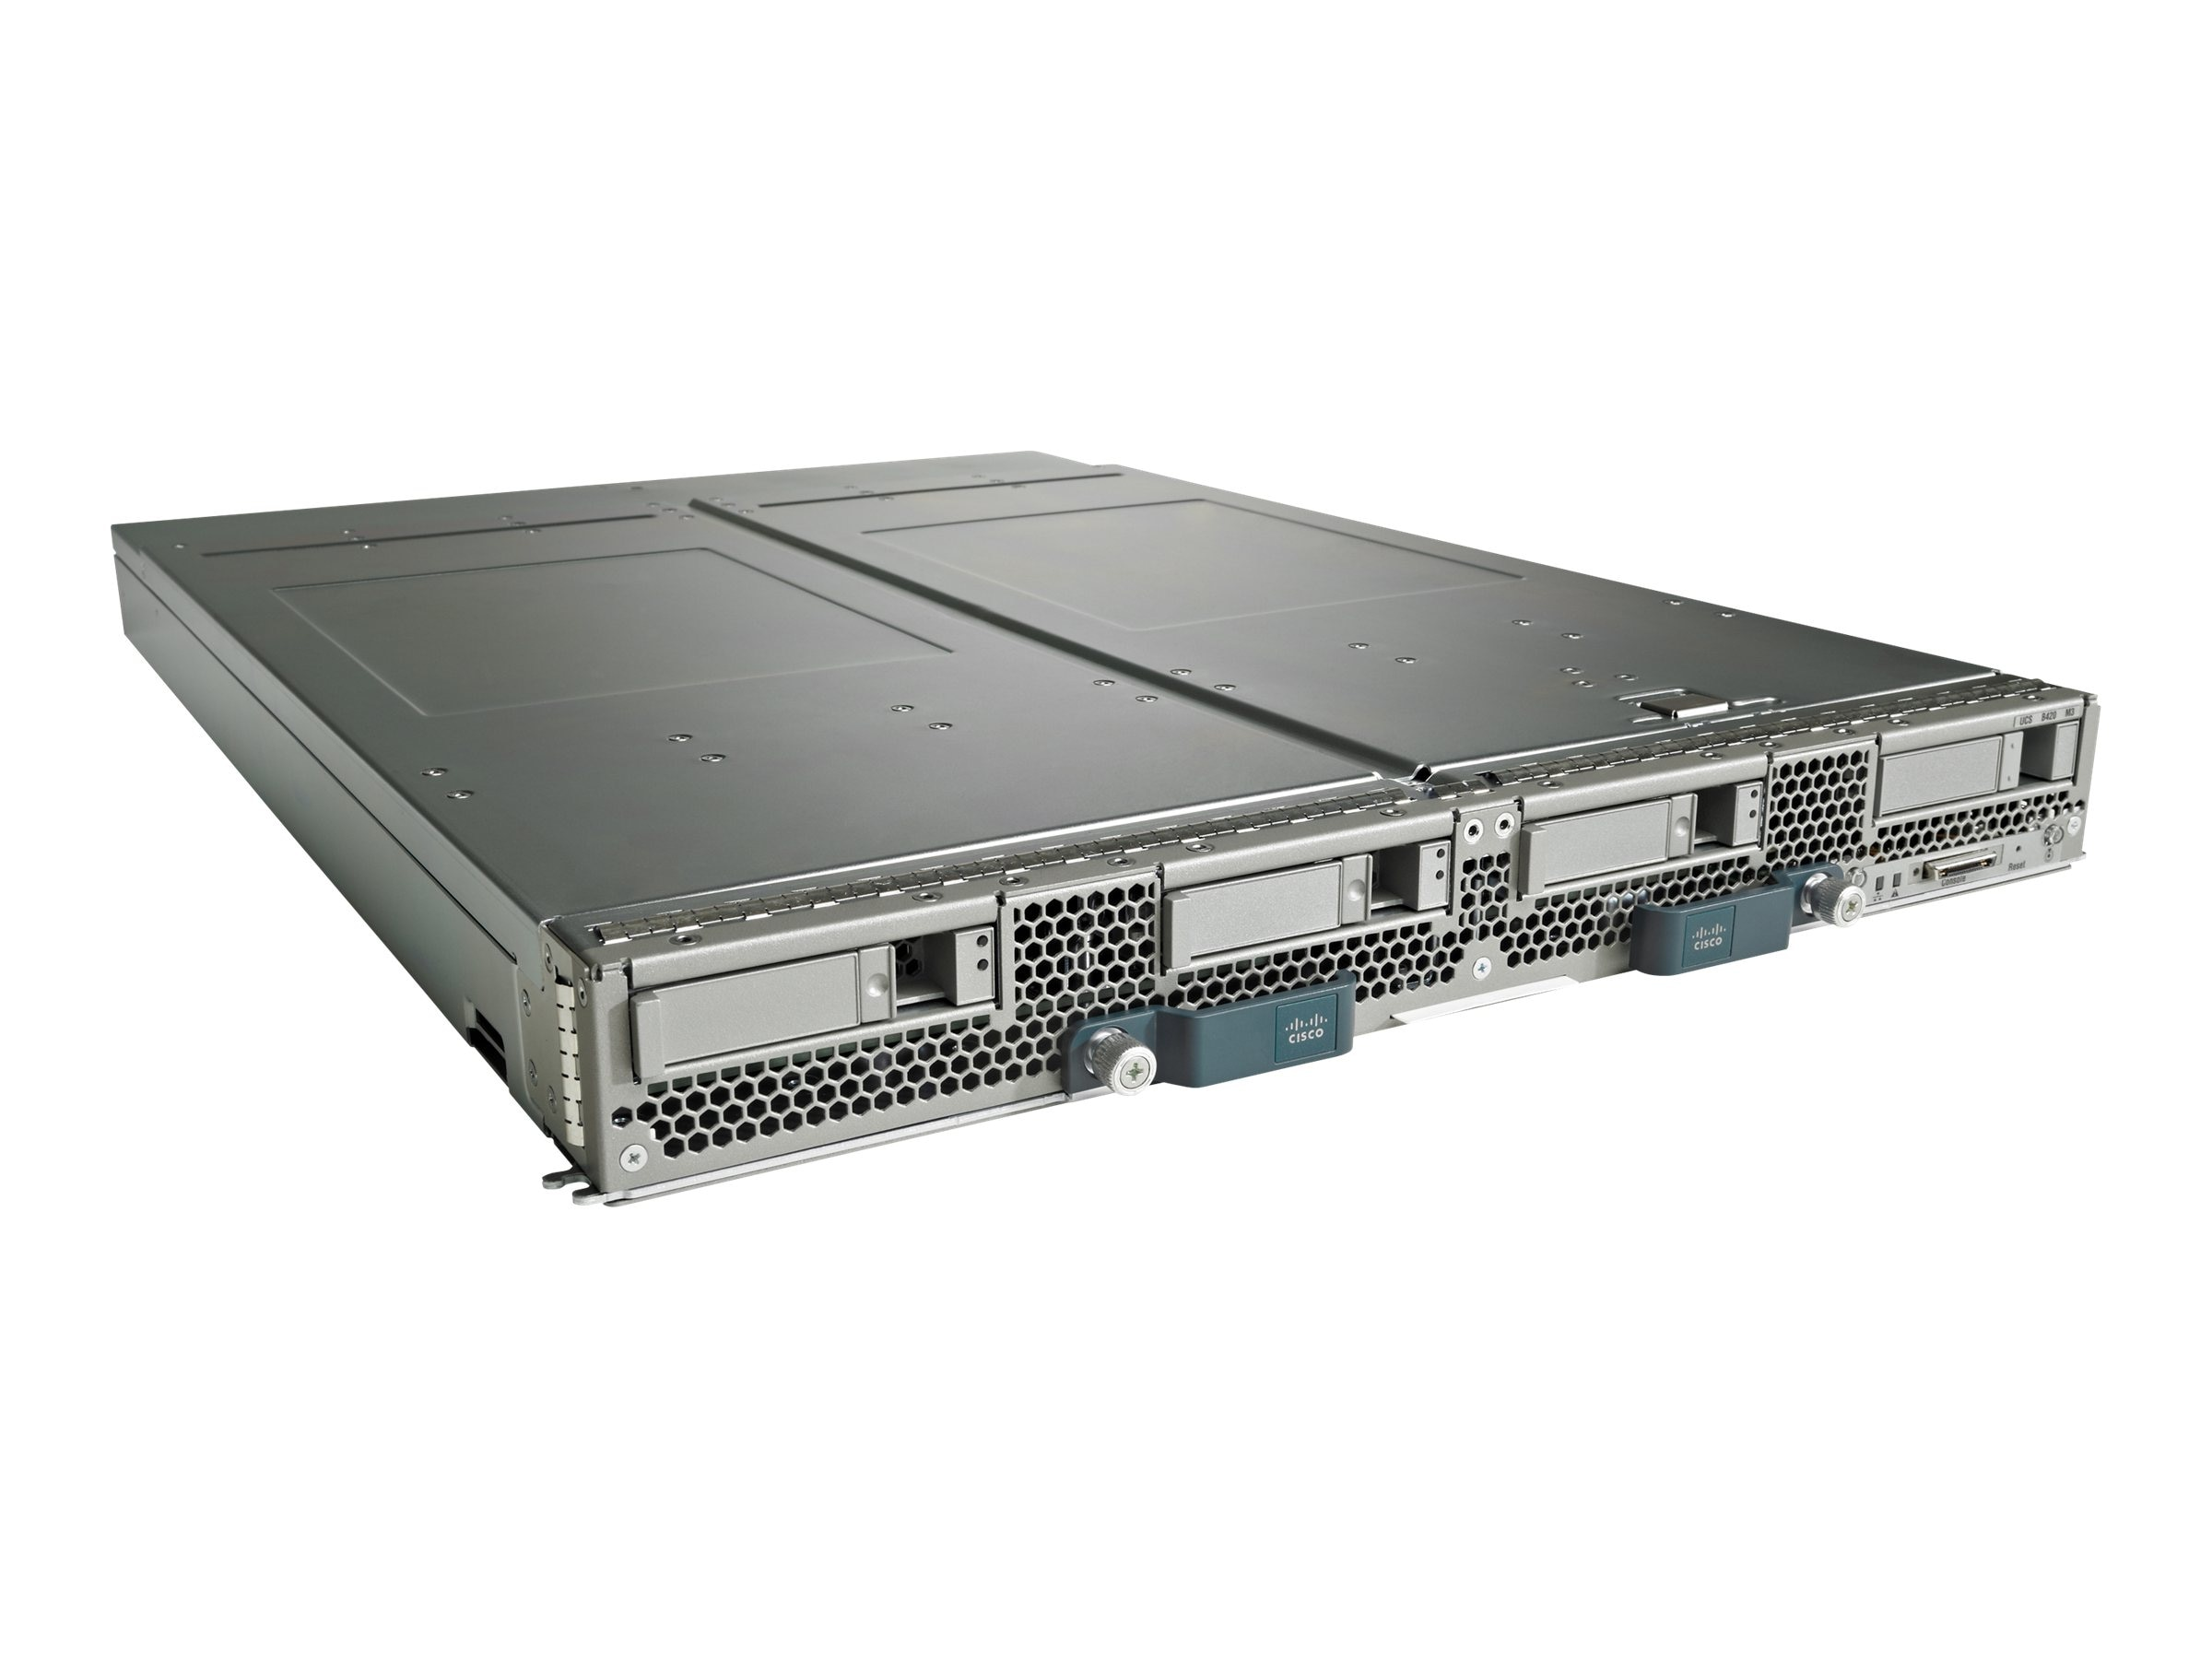 Cisco UCSB-B420-M3-D Image 3